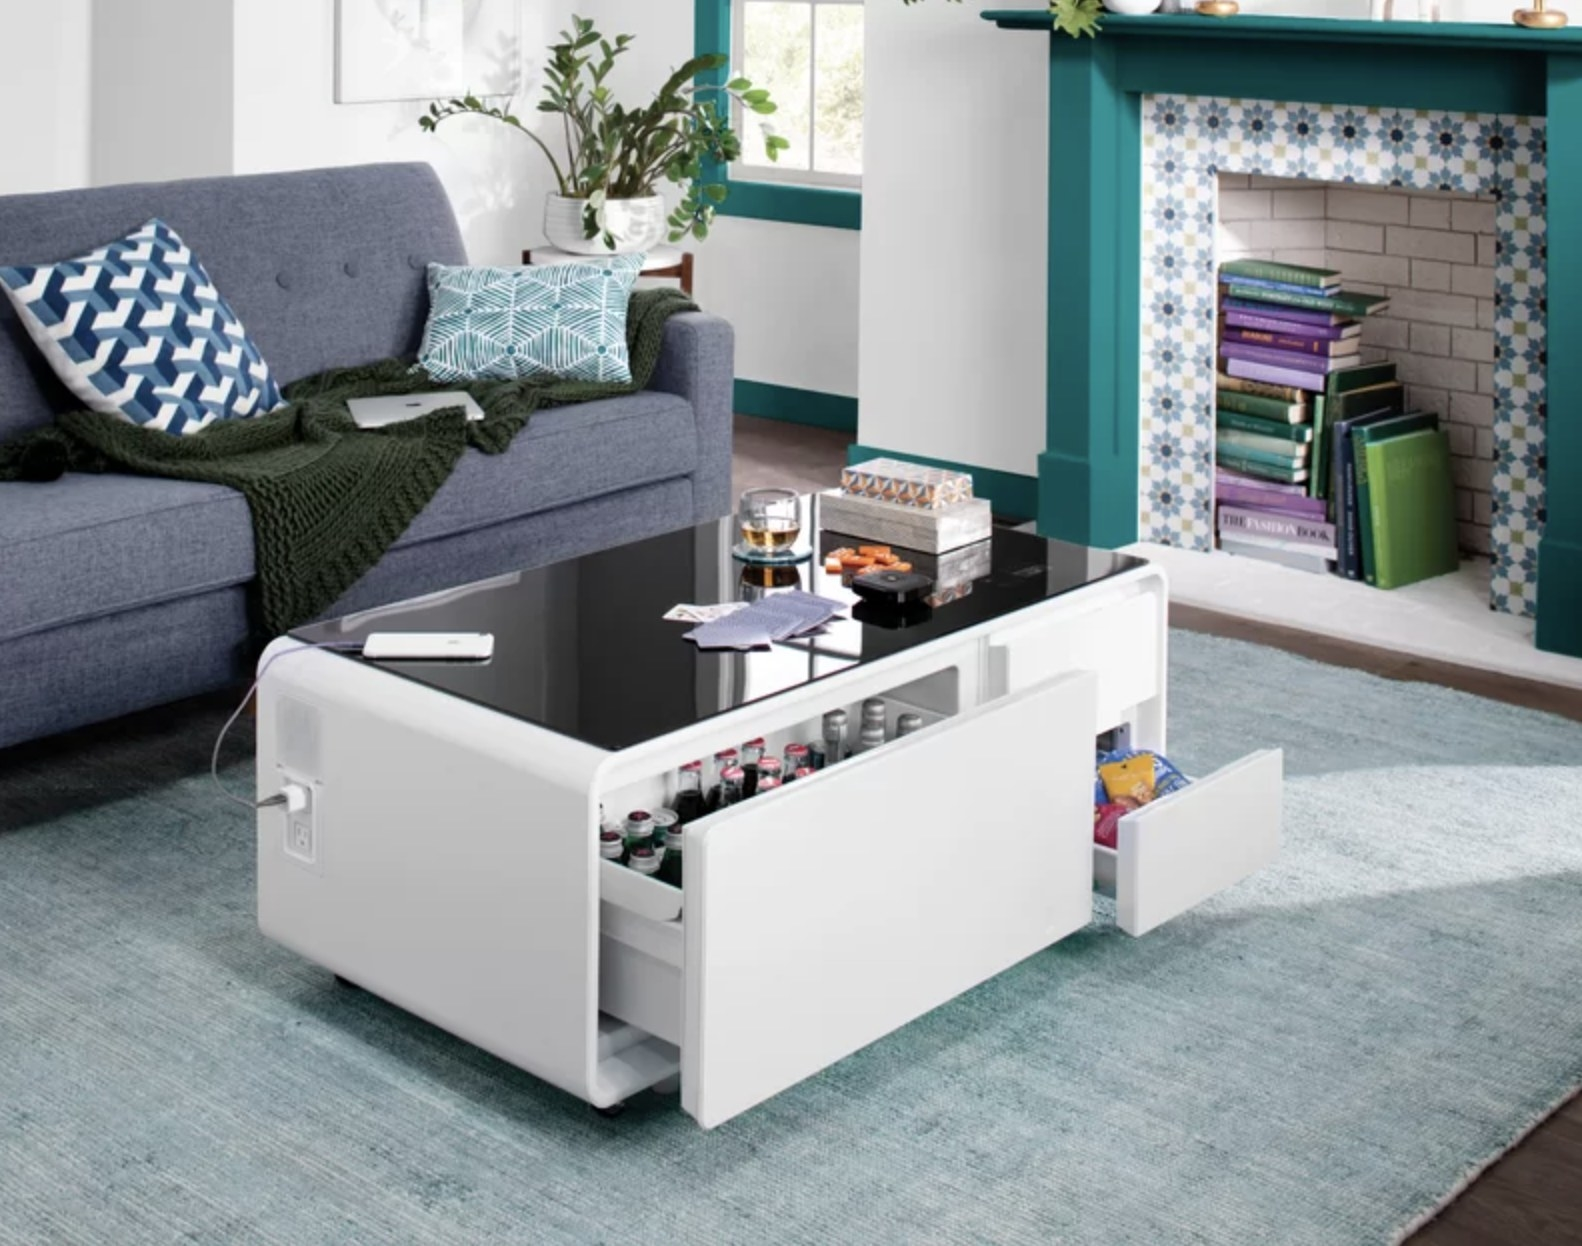 the coffee table shown with the drinks inside the fridge drawer, the two outlets on the side, and the two drawers for storage